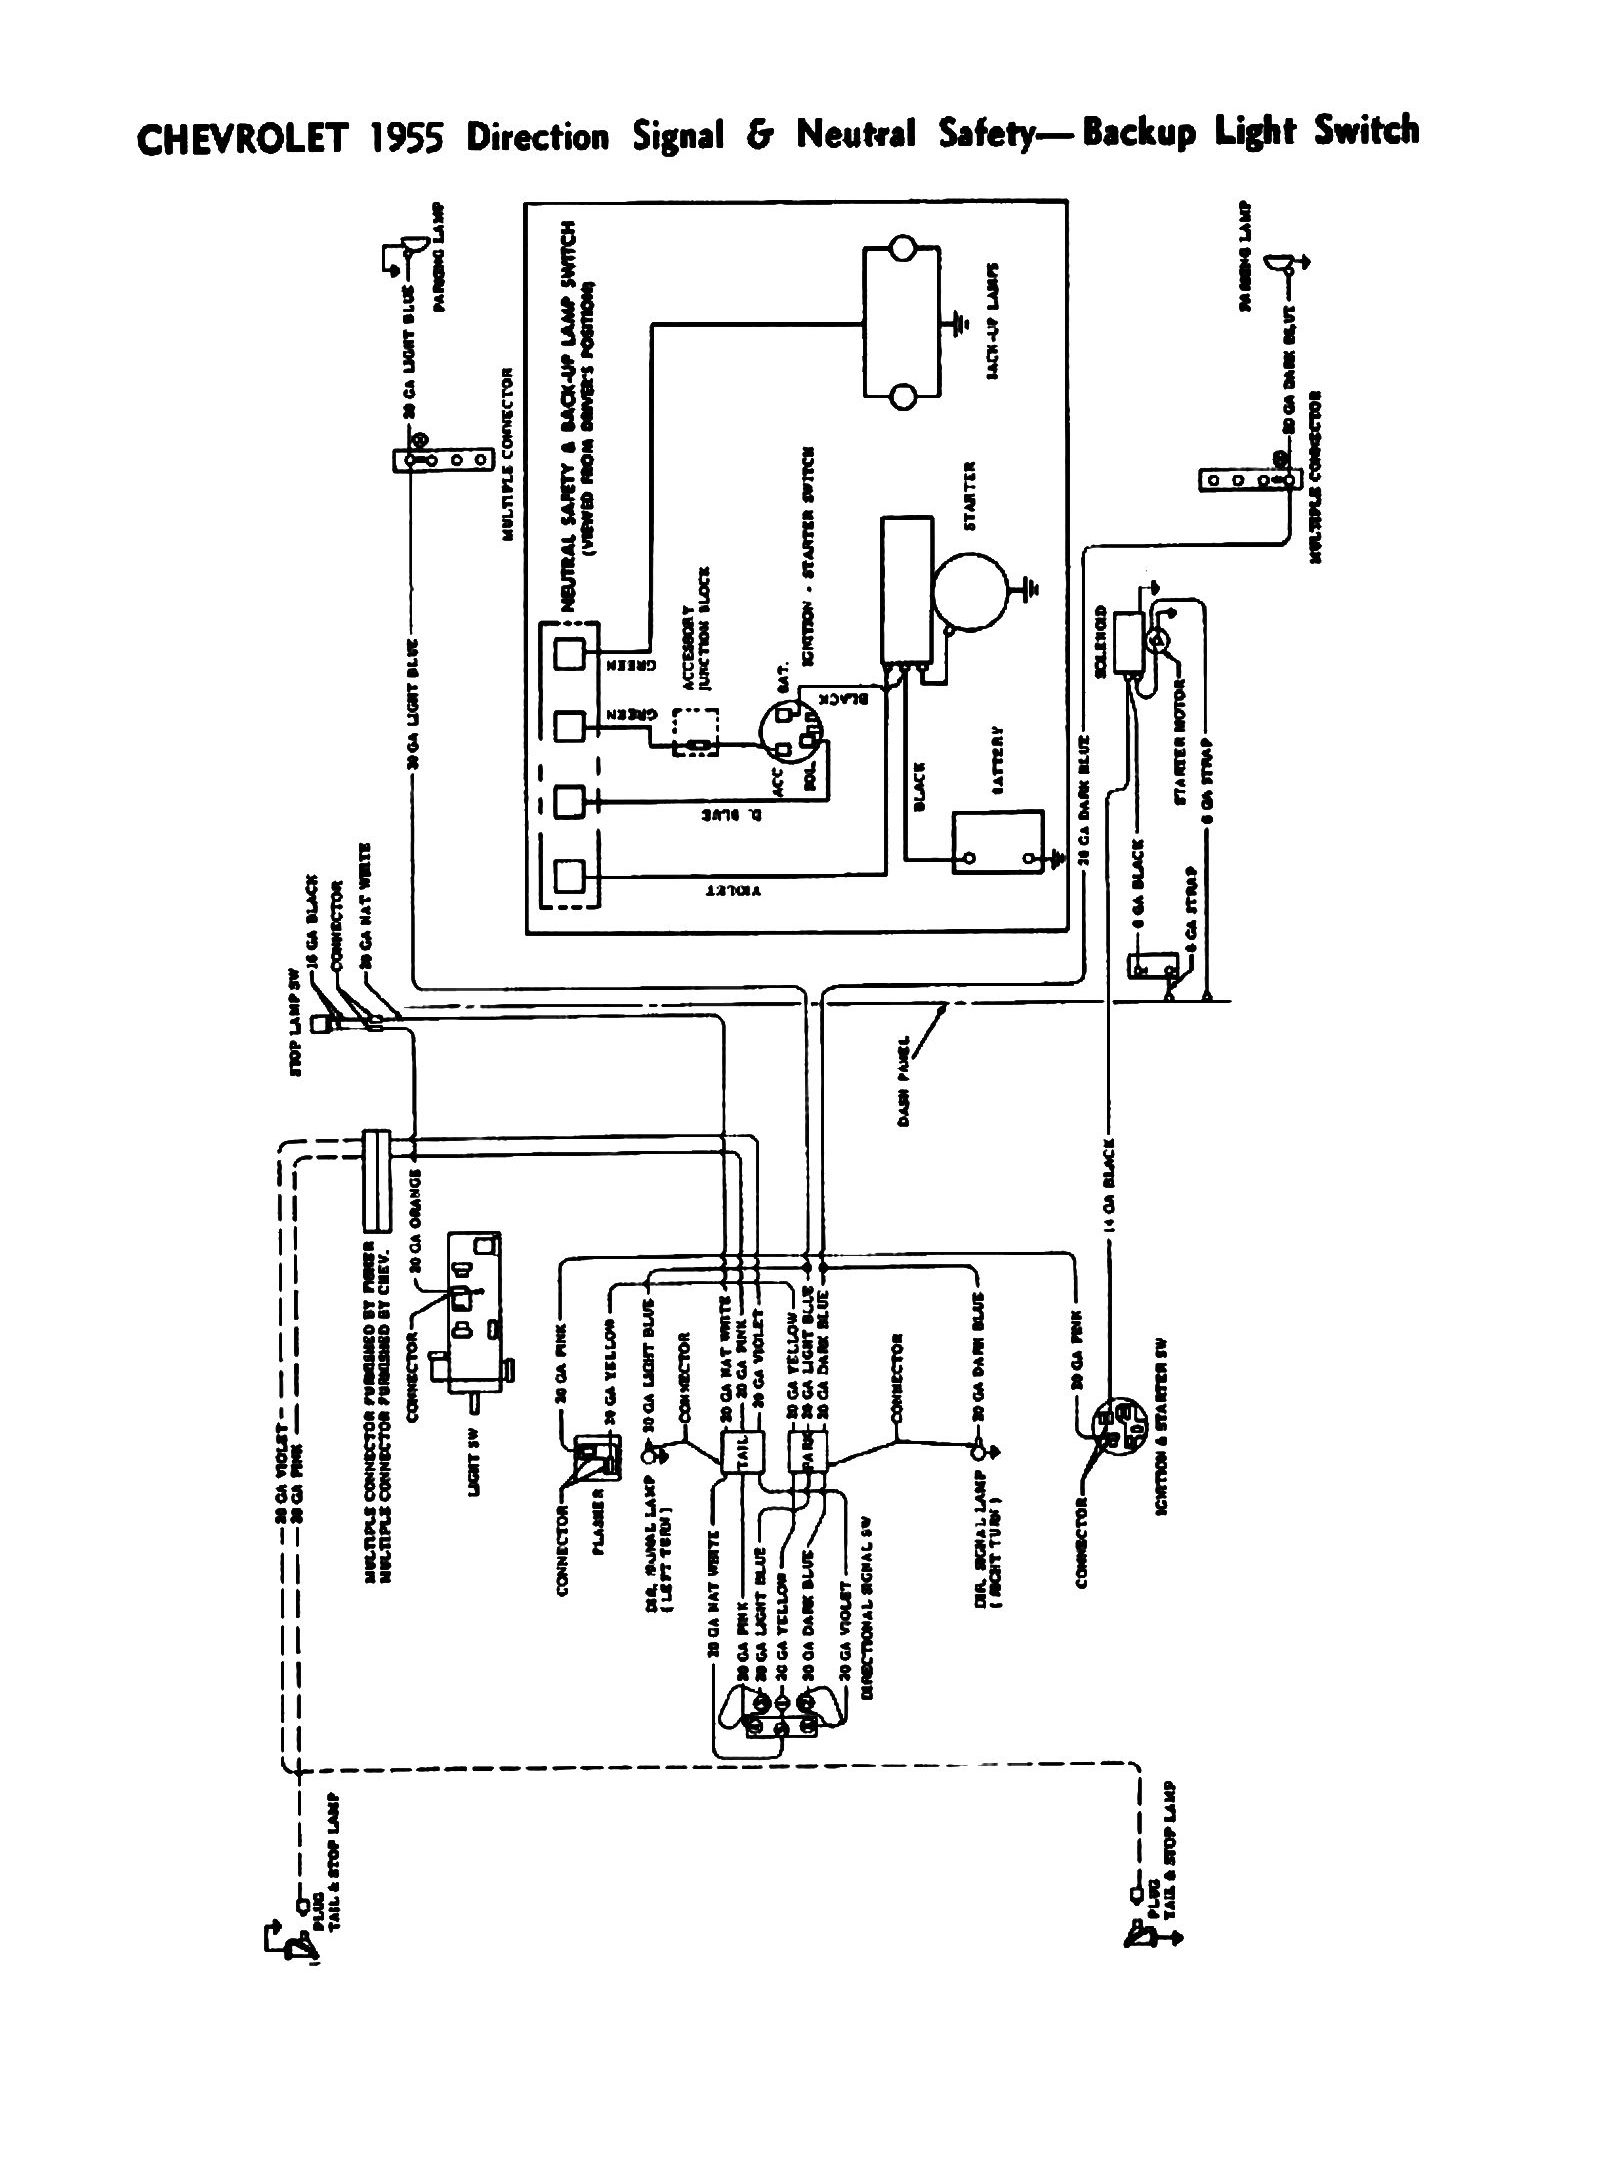 55signal wiring diagram headlight switch 55 chevrolet readingrat net 55 chevy wiring harness at soozxer.org